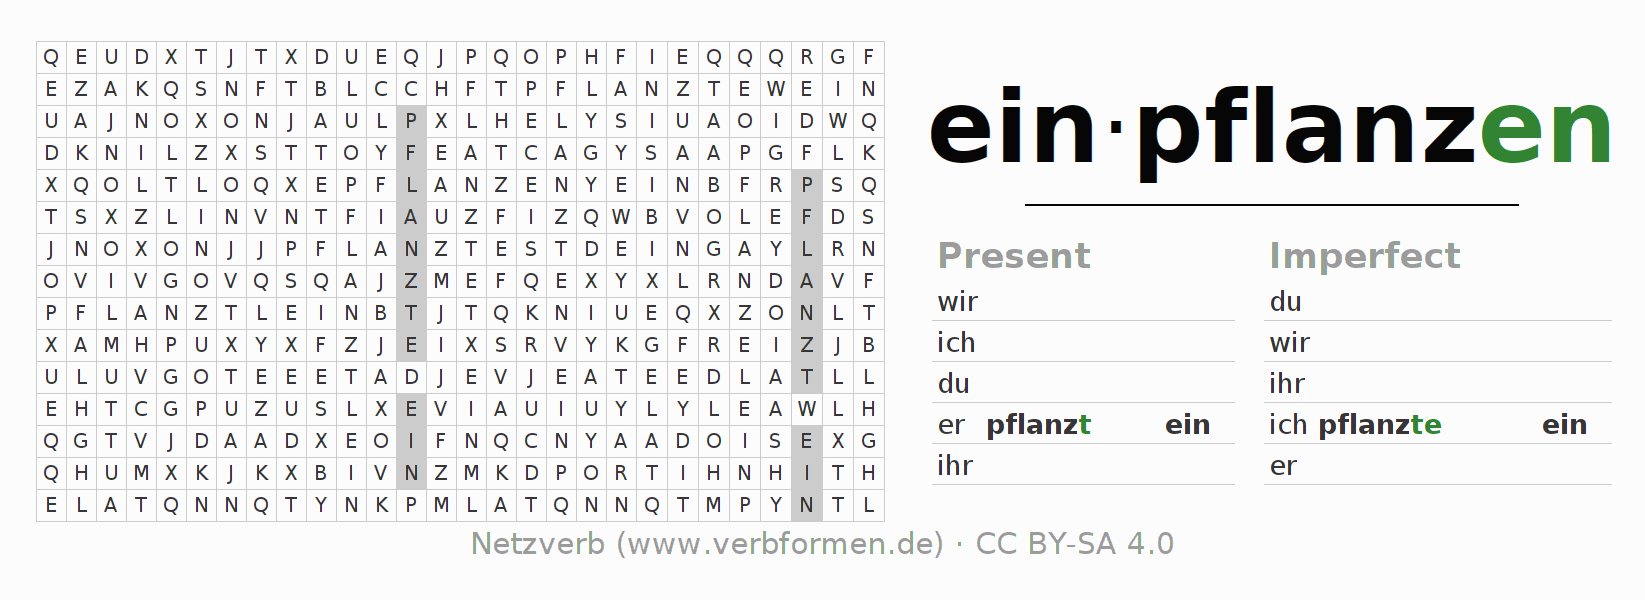 Word search puzzle for the conjugation of the verb einpflanzen